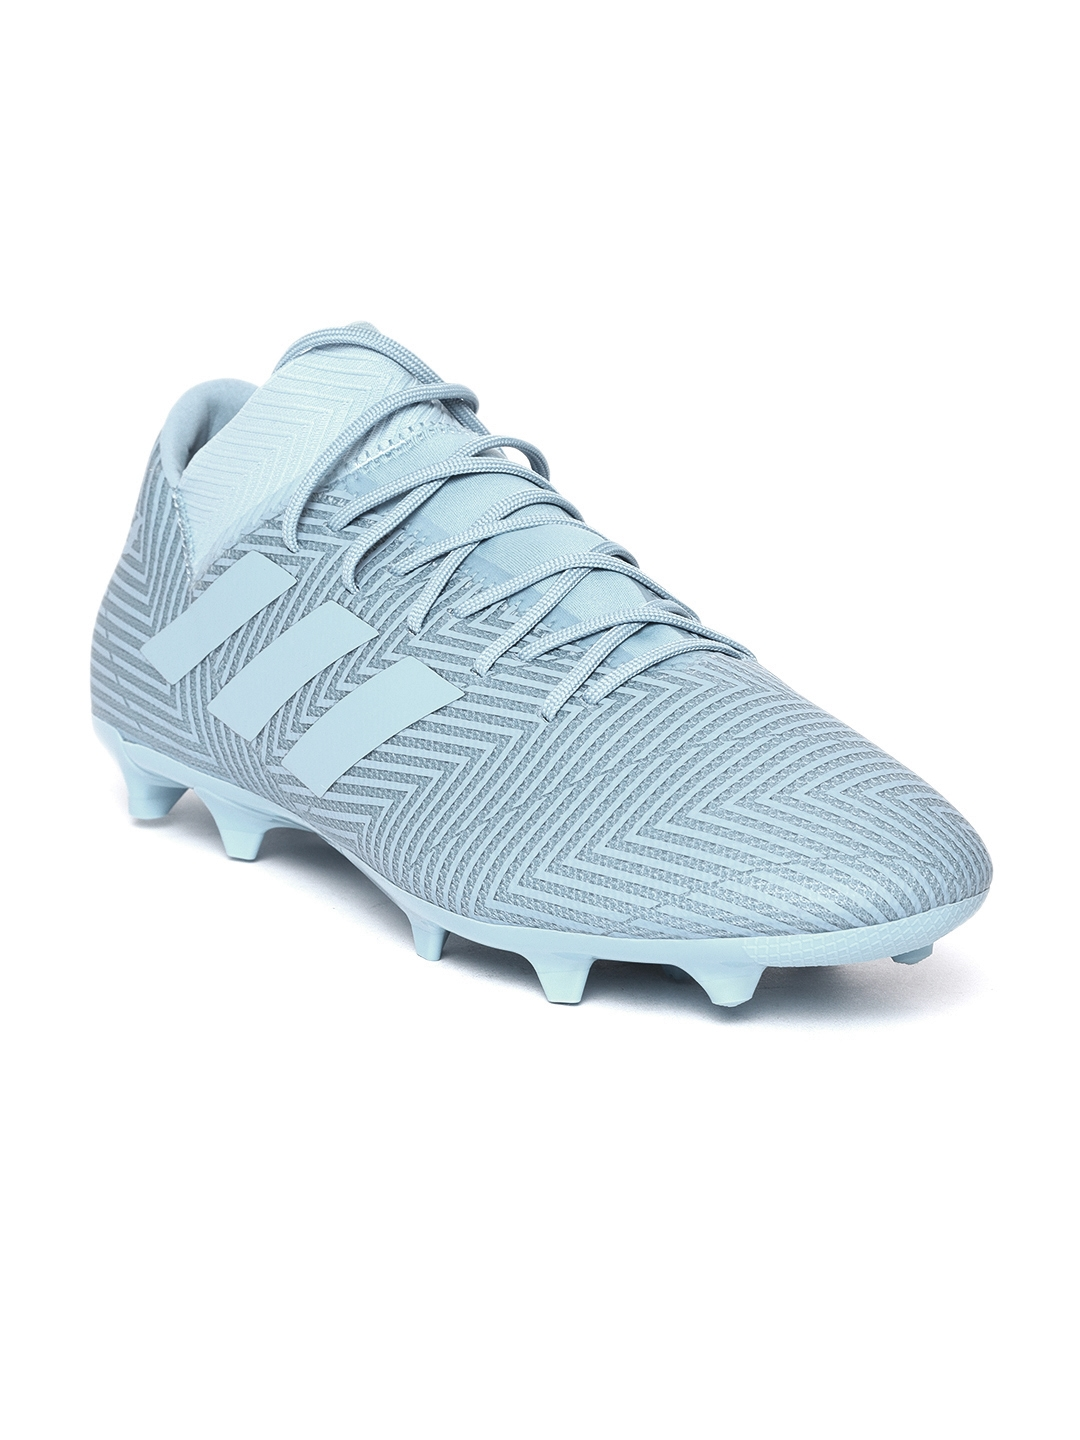 timeless design 045ca 0a8b5 ADIDAS Men Blue NEMEZIZ Messi 18.3 Firm Ground Football Shoes